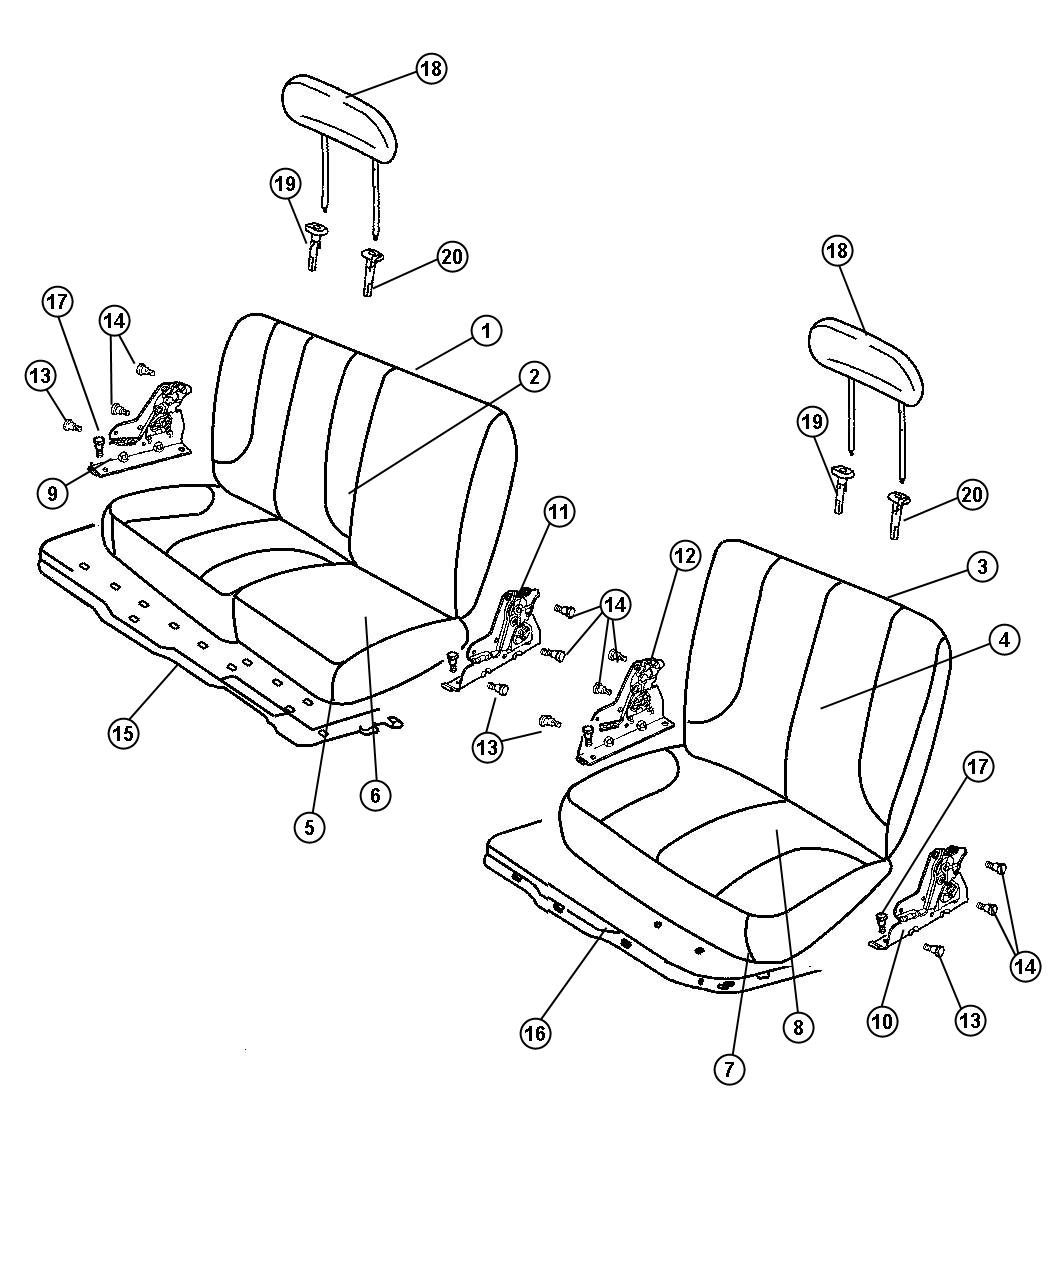 Diagram Rear Seat - Split Seat - Trim Code [AJ]. for your Dodge